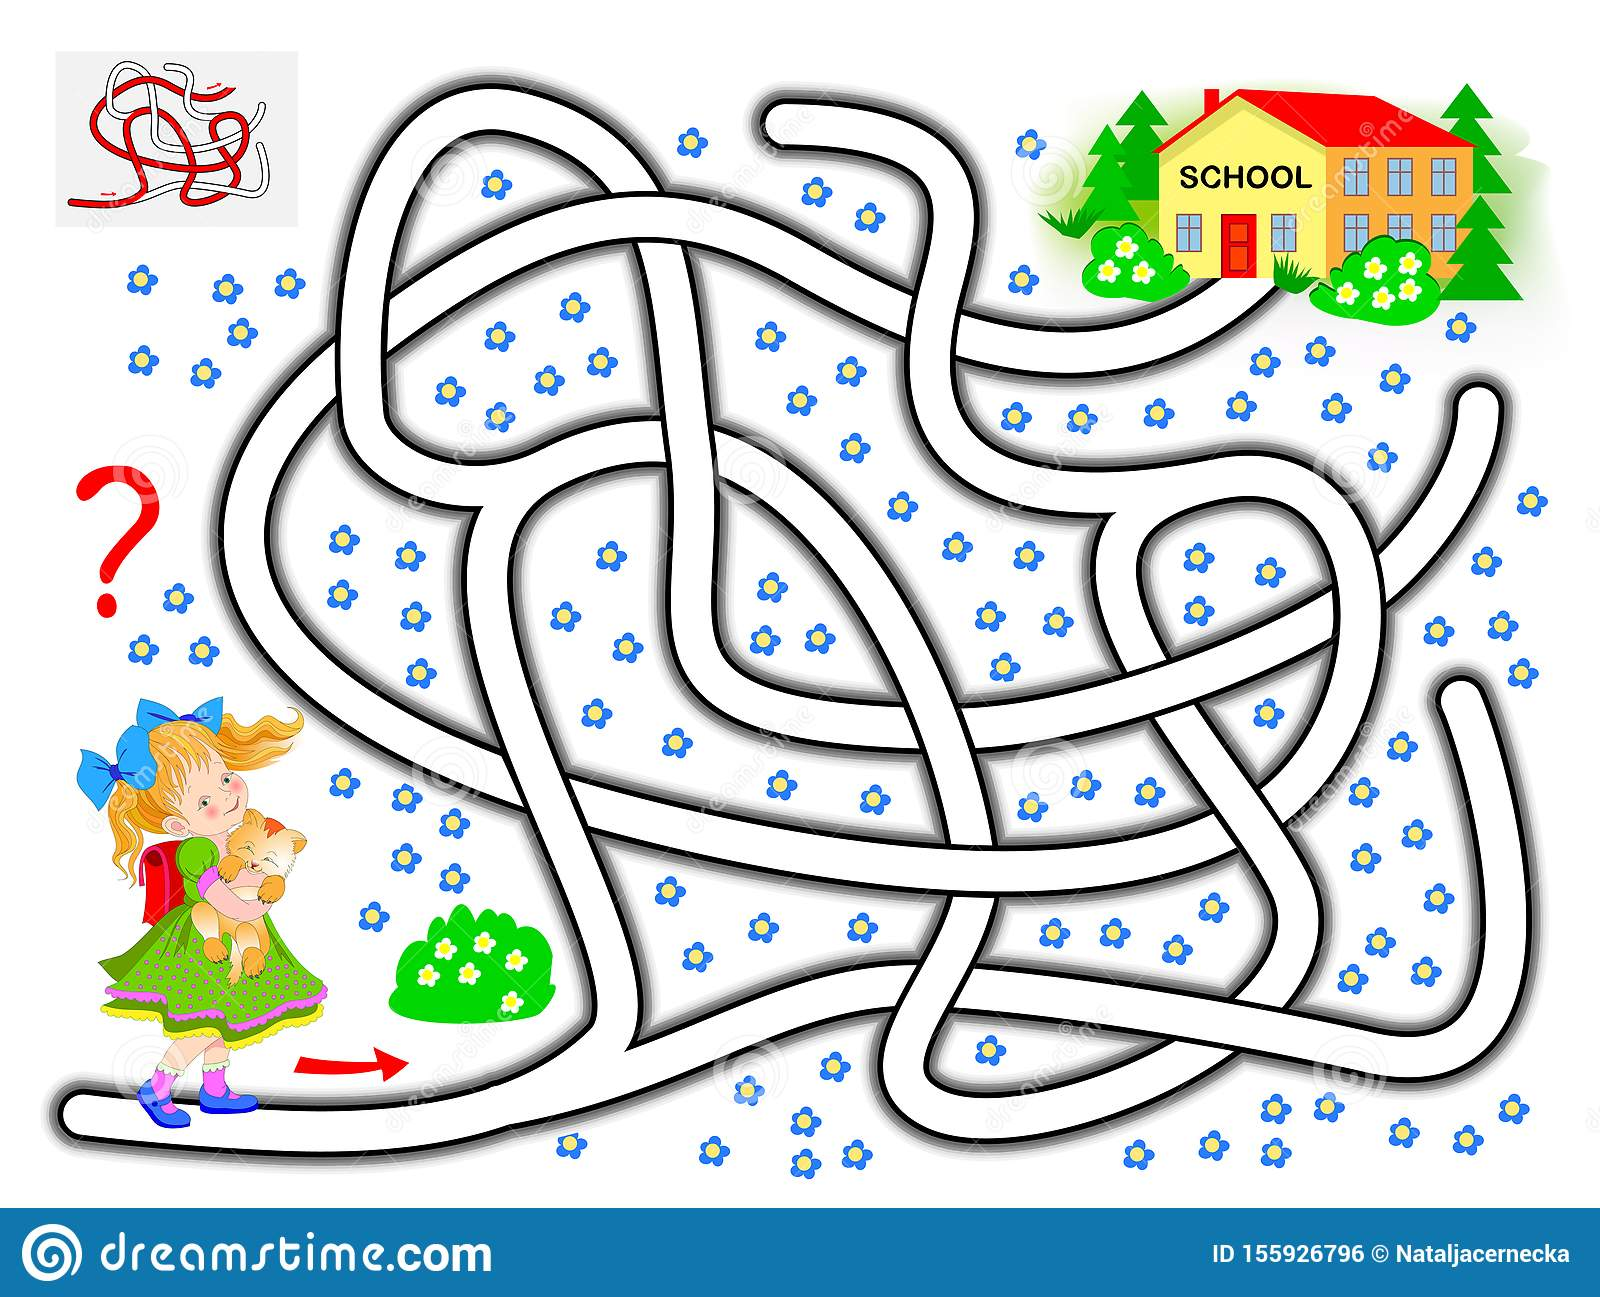 Logical Puzzle Game With Labyrinth For Children Help The